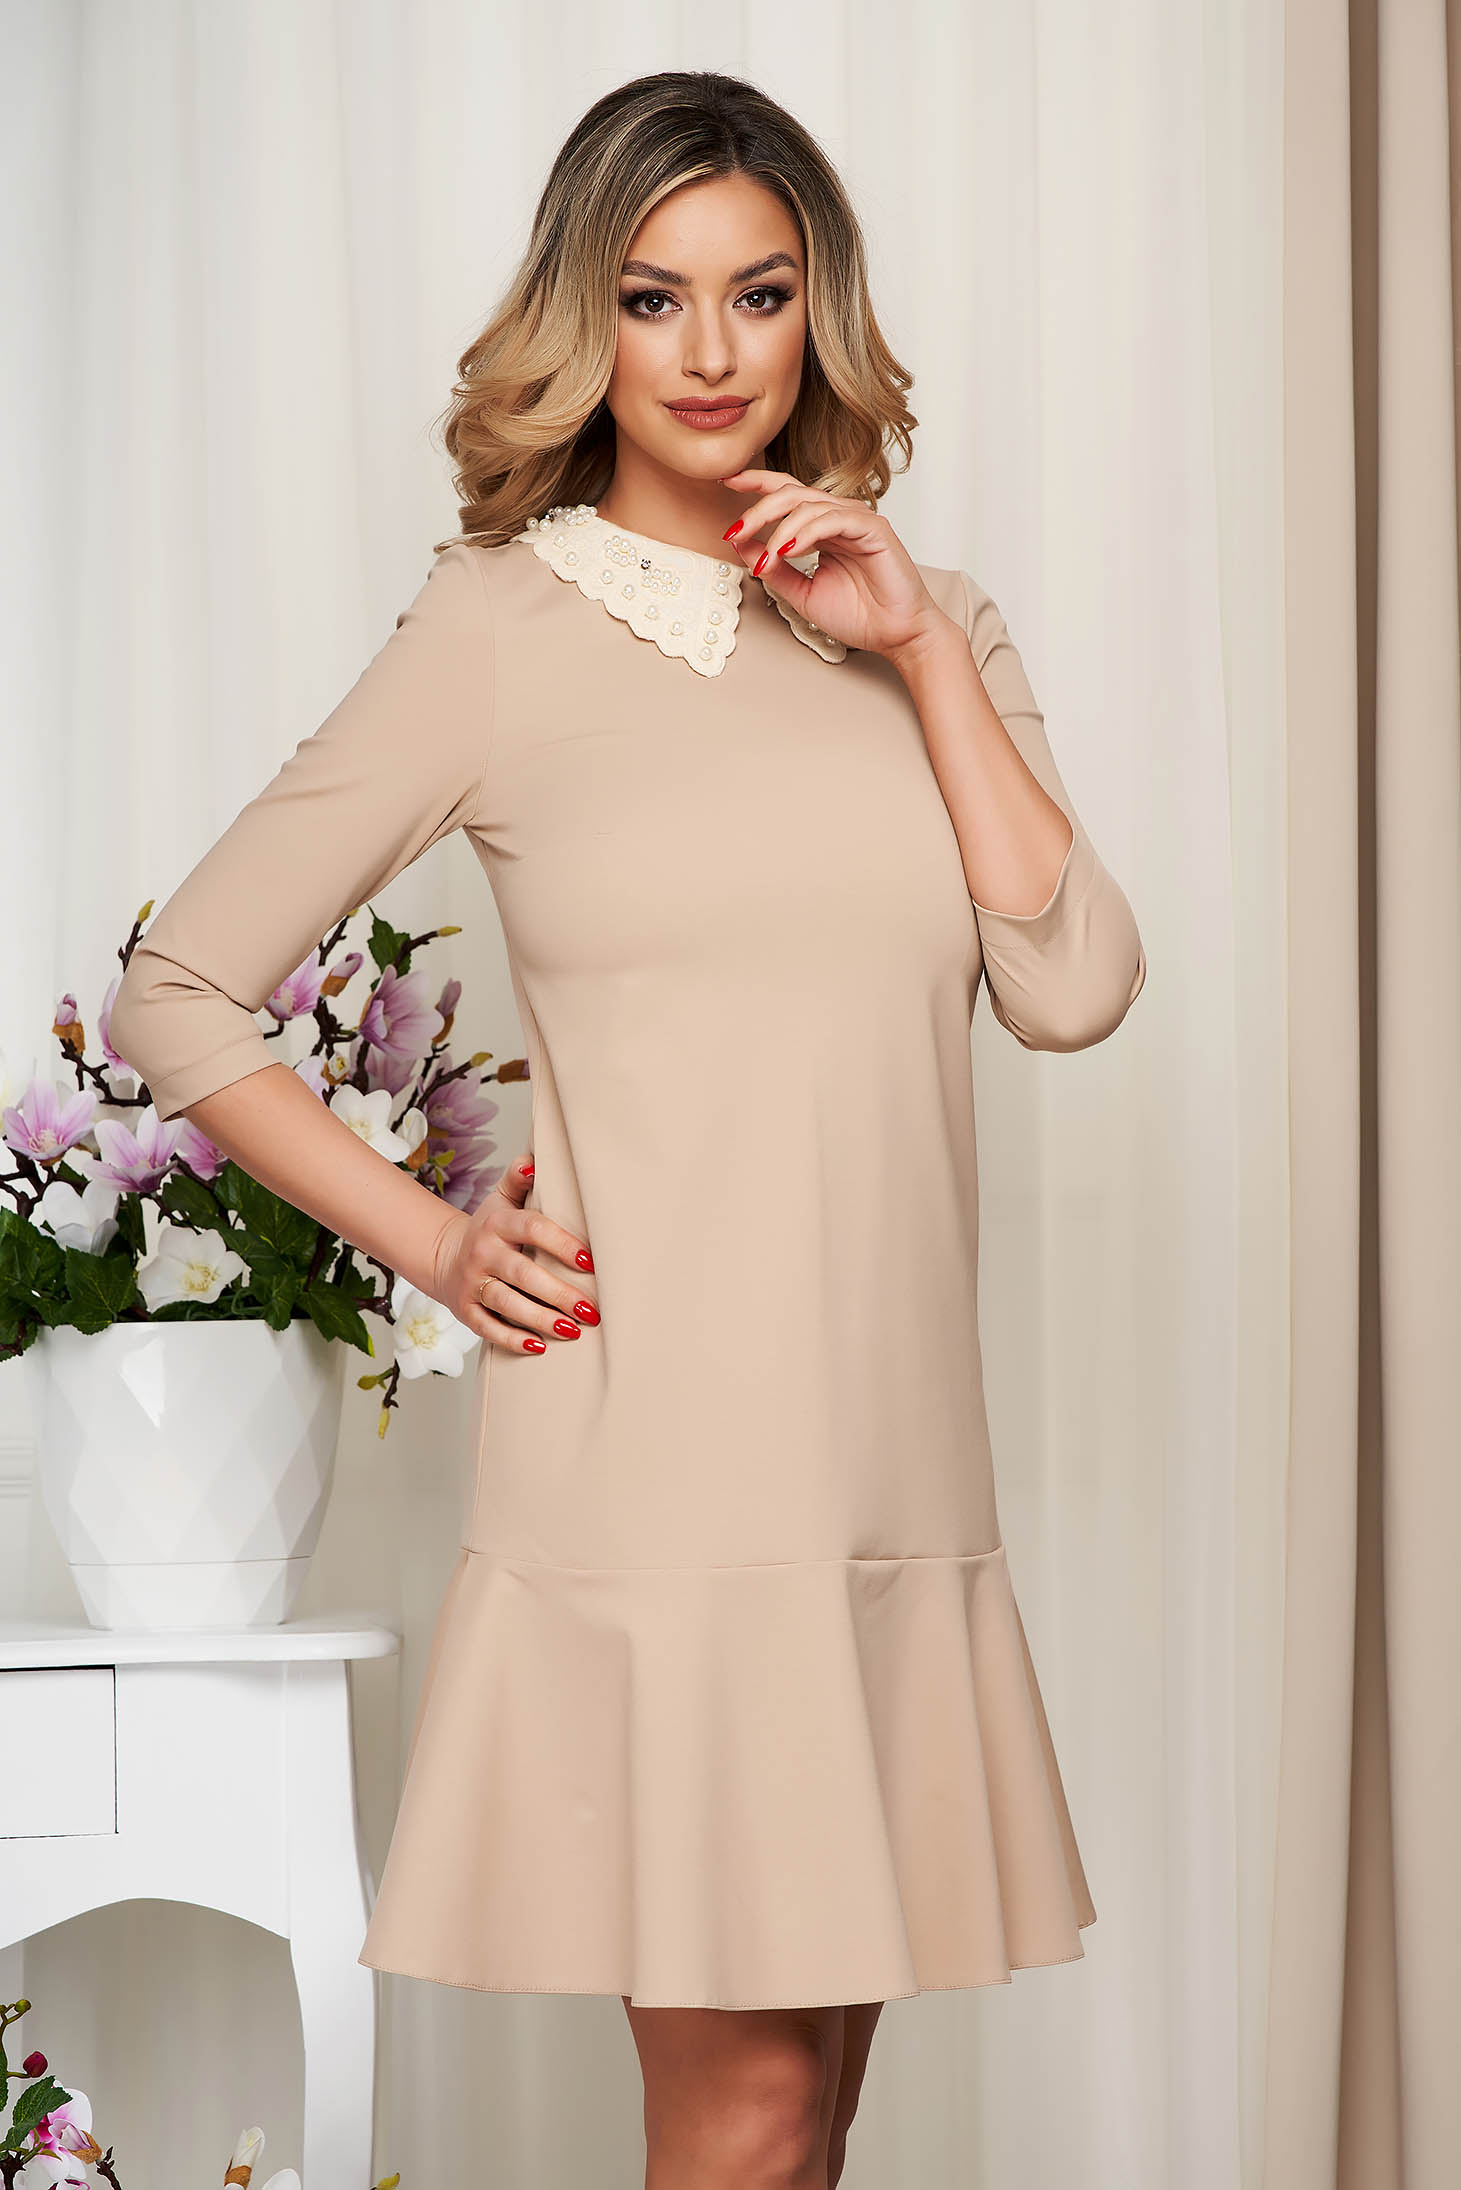 Dress StarShinerS cream stretch occasional with ruffles at the buttom of the dress with collar with pearls